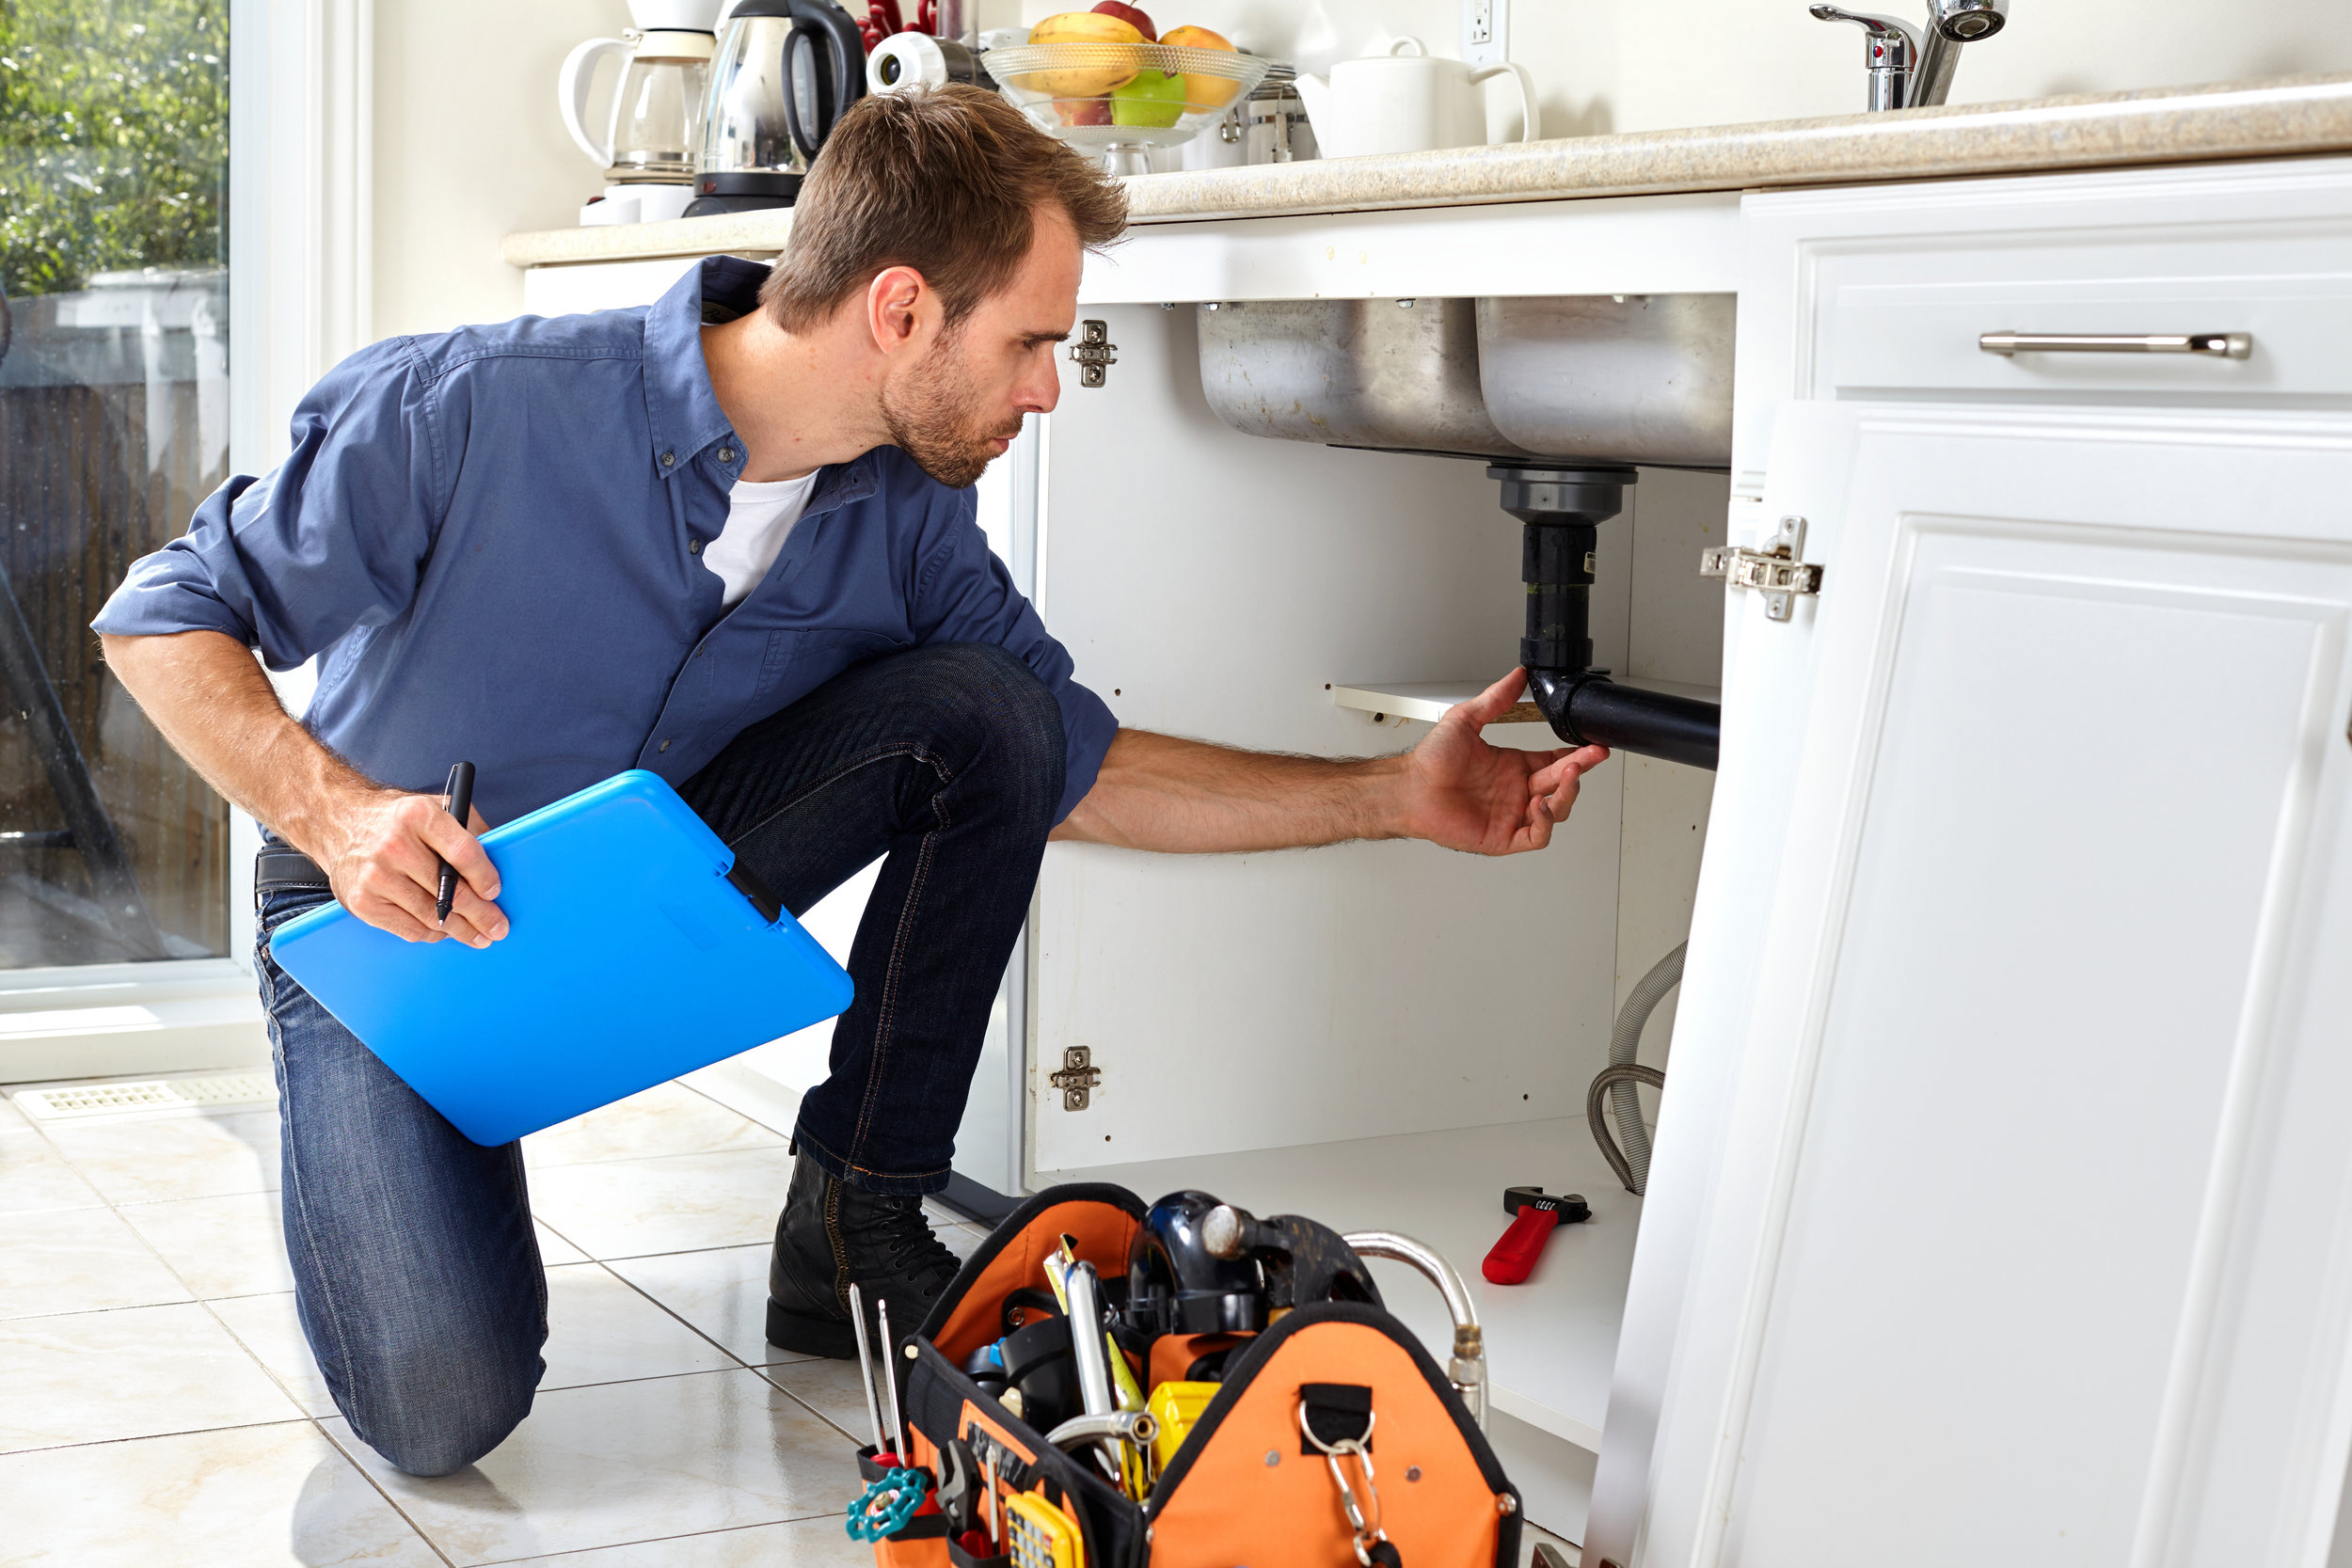 The-Importance-of-Hiring-a-Licensed-Plumber-for-Your-Home-BL3-Plumbing-Drains-Sewer-Oklahoma